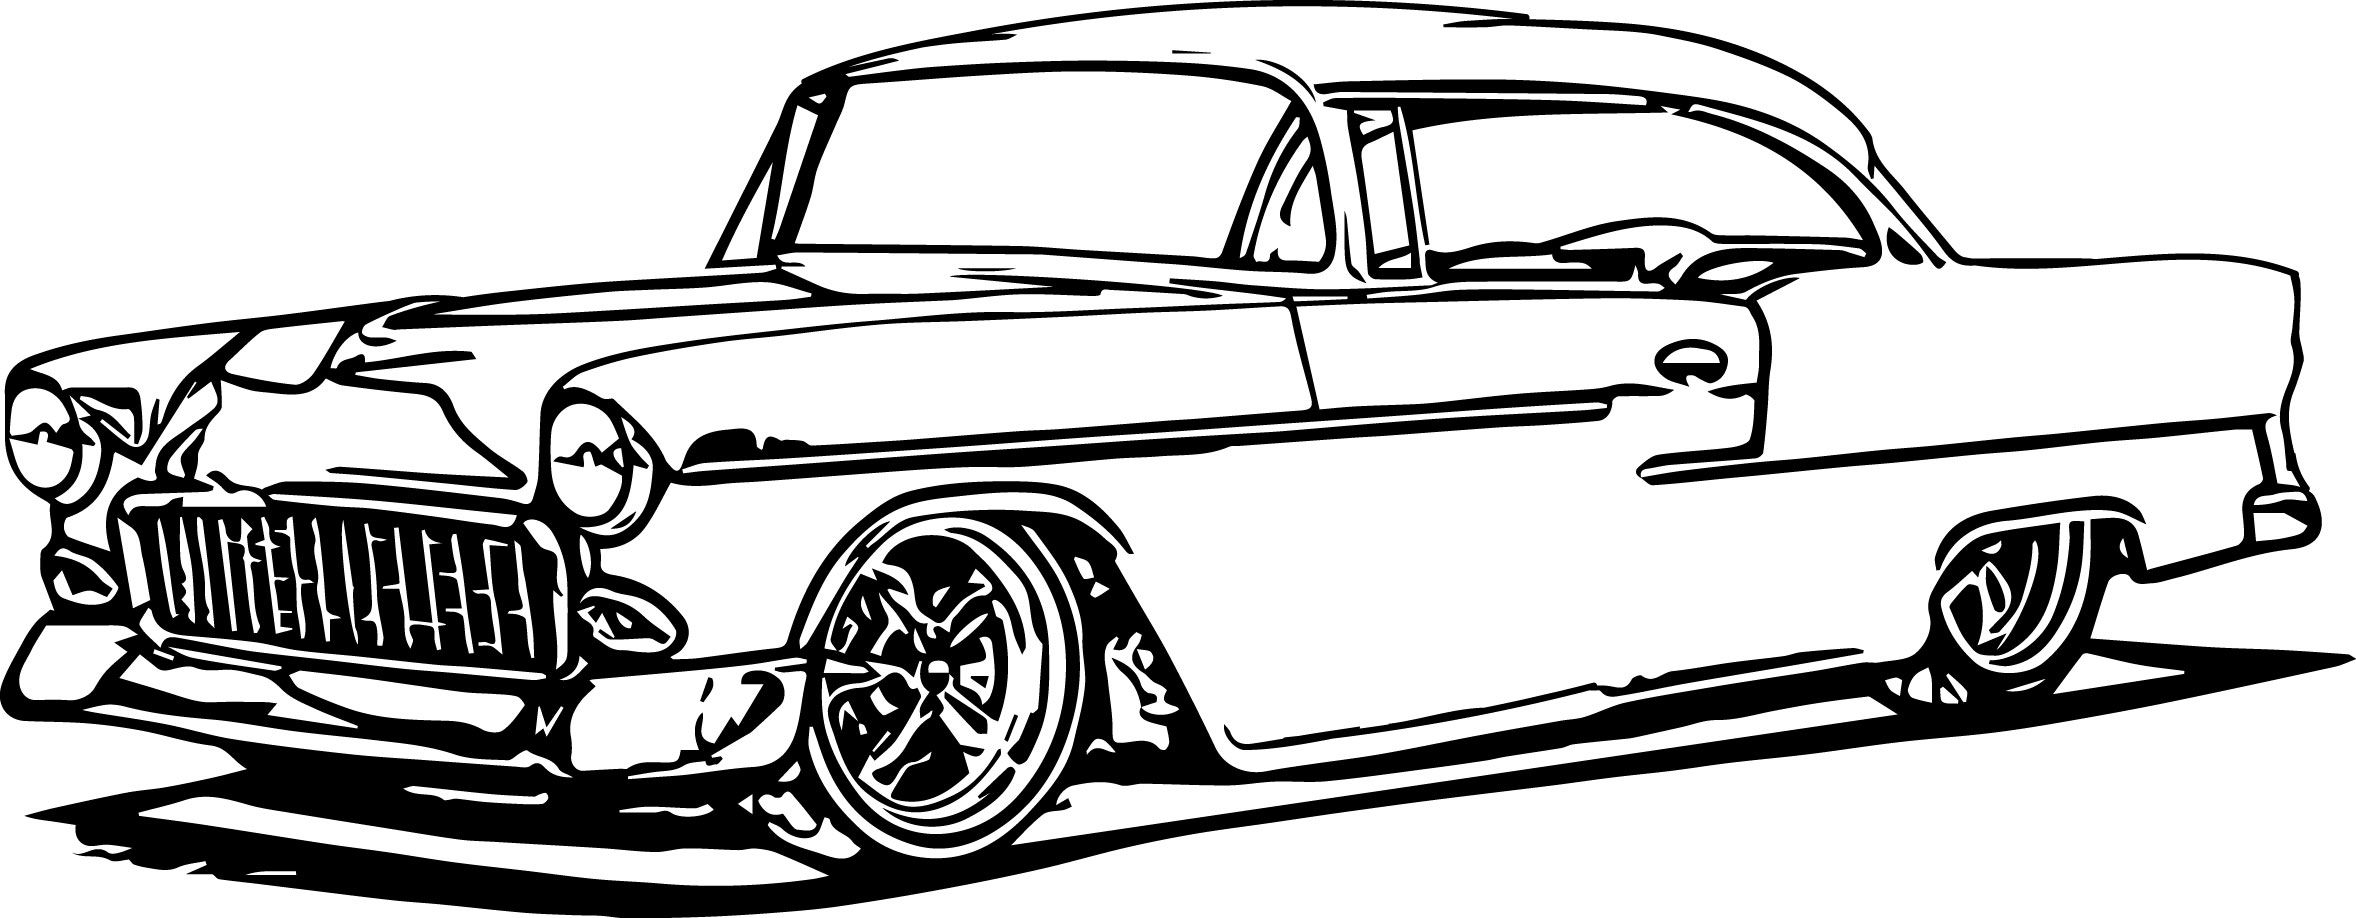 Antique Car Coloring Pages wecoloringpage